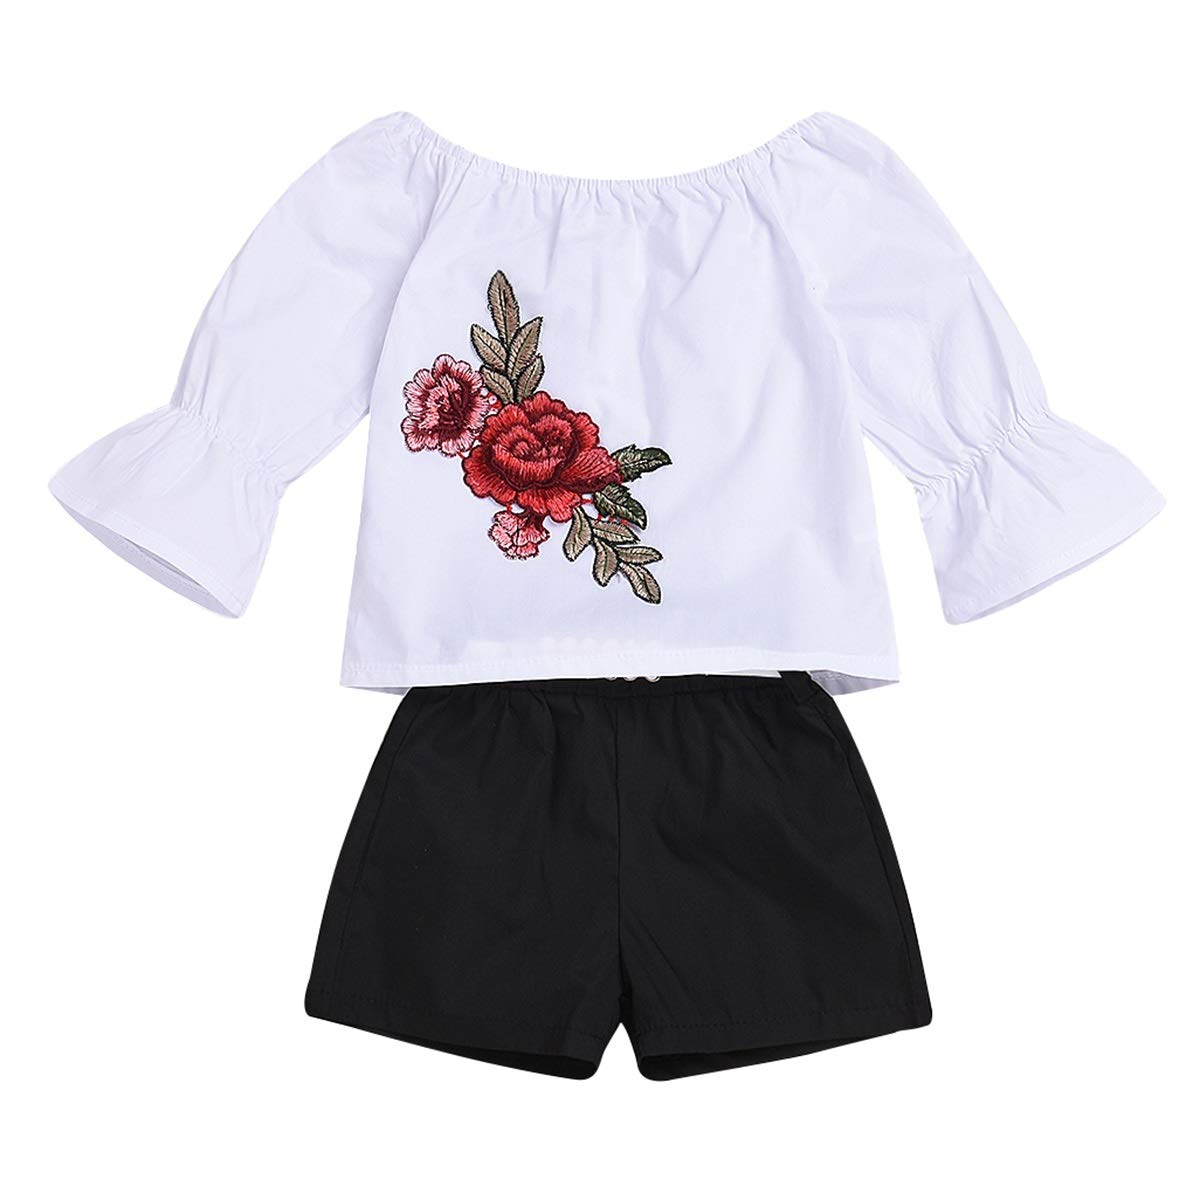 Casual Beach Top Pants Outfits for Infant Toddler Aisheny Baby Girls Embroideries Flower T-Shirt Shorts Set